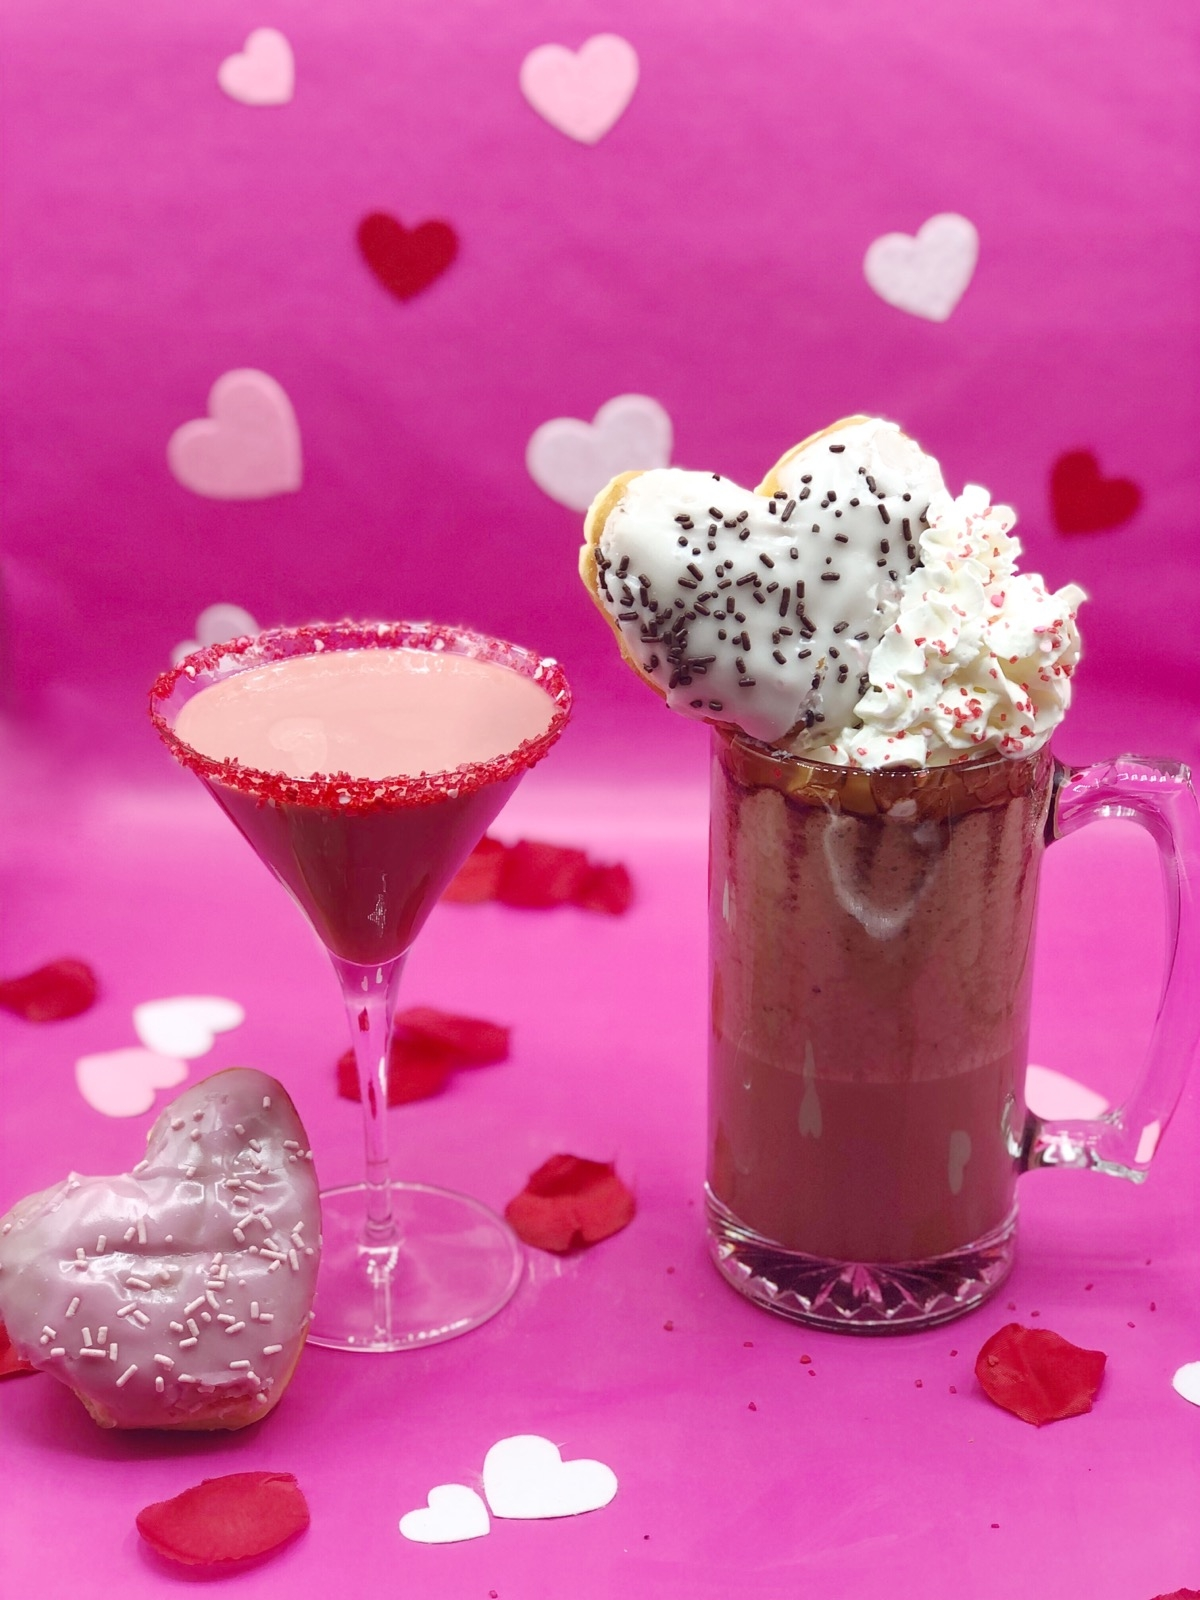 Celebrate Valentine's Day with Two Sweet Dunkin' Cocktail Recipes